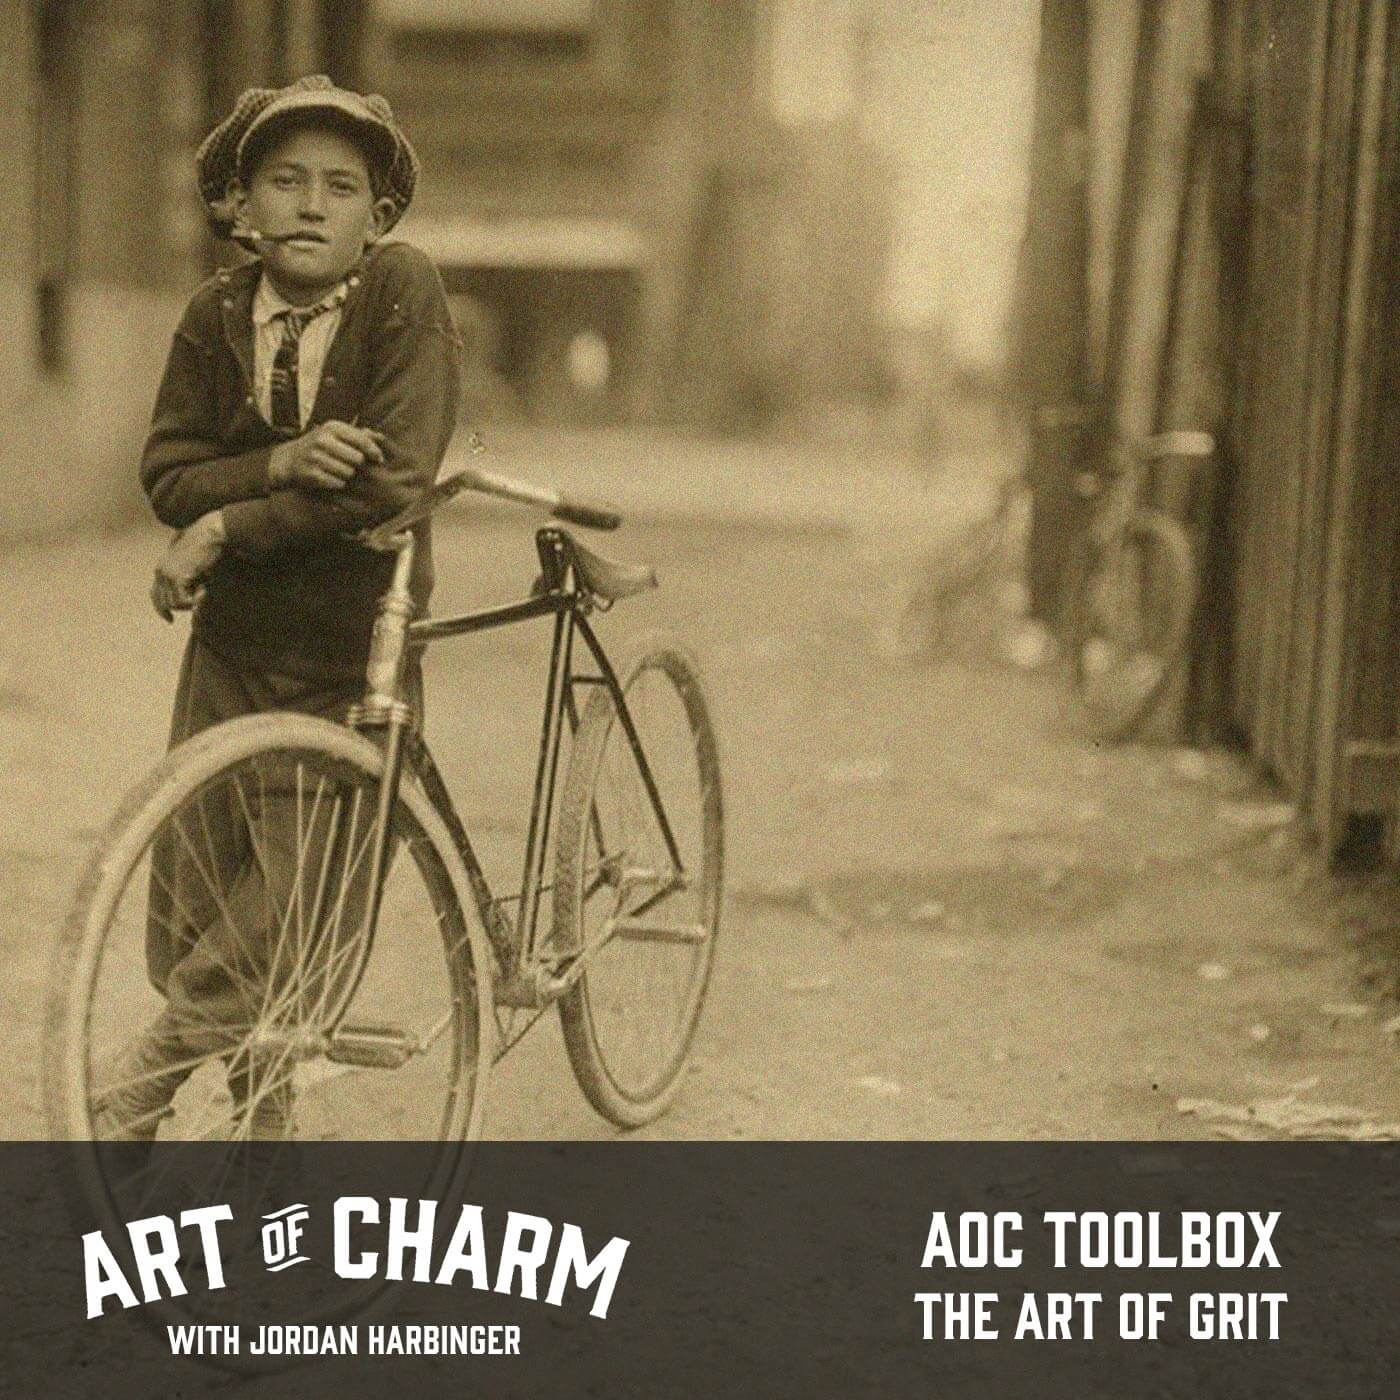 AoC Toolbox | The Art of Grit (Episode 620)